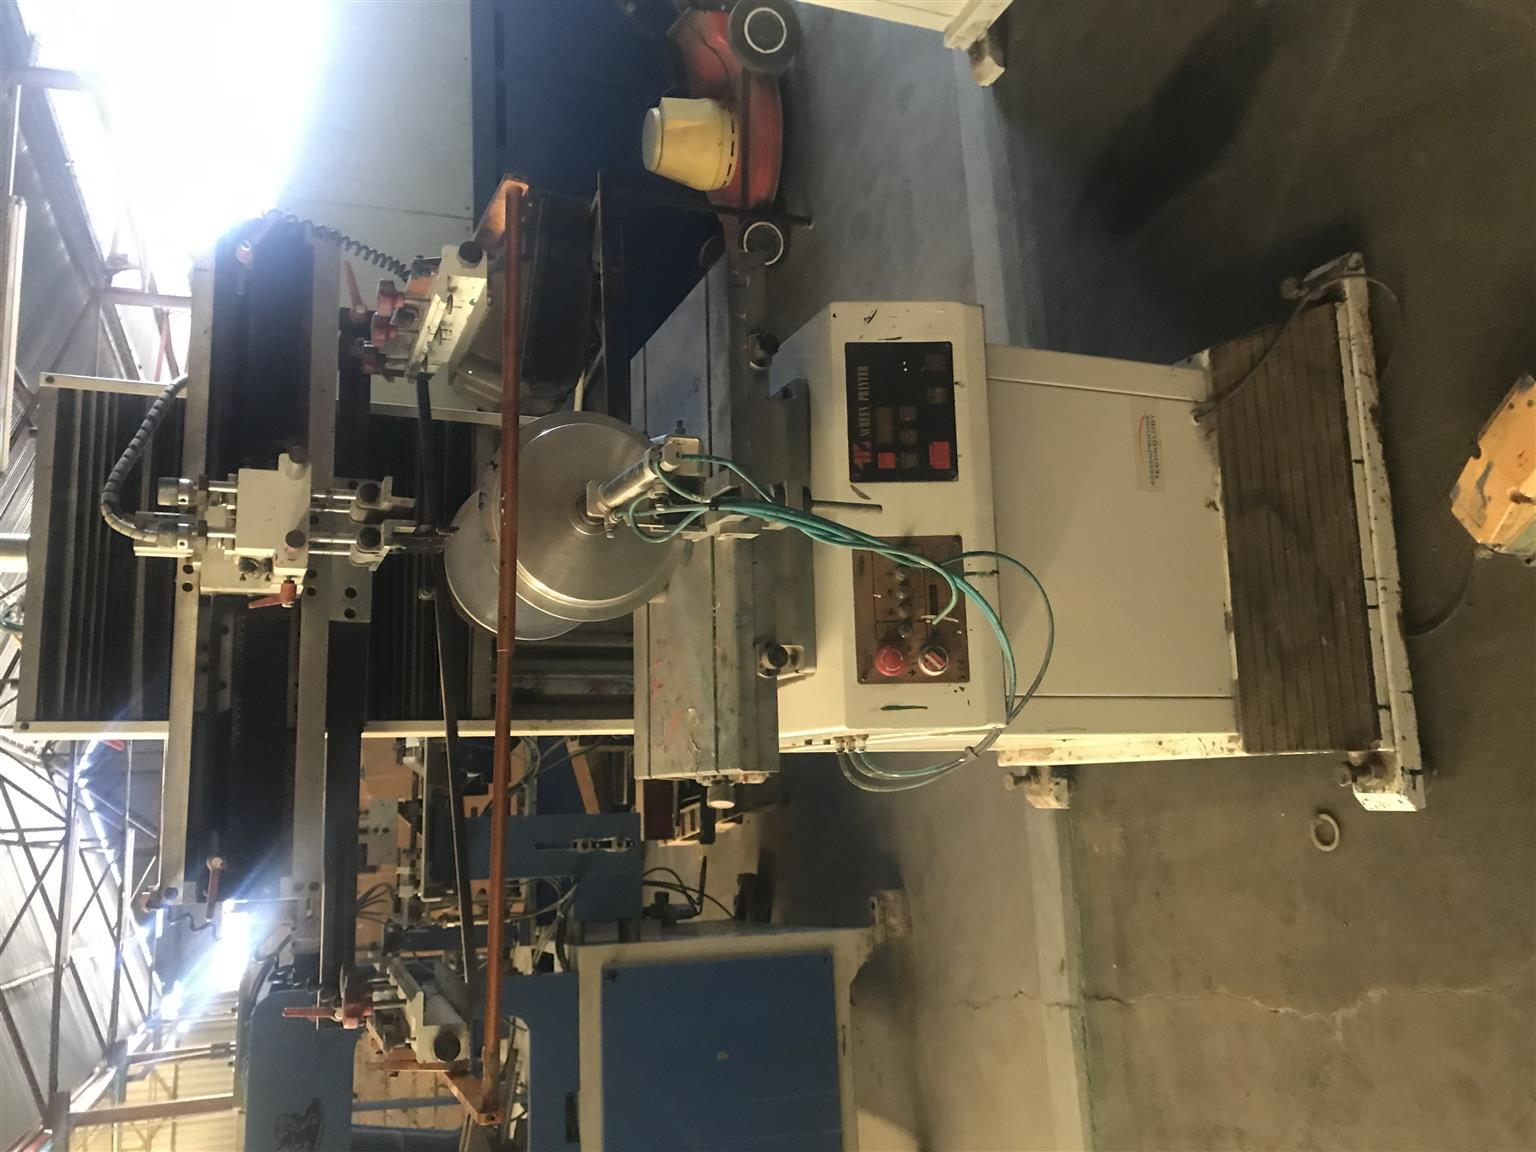 Injection moulding Plus bottle printing plant Based in Polokwane  :